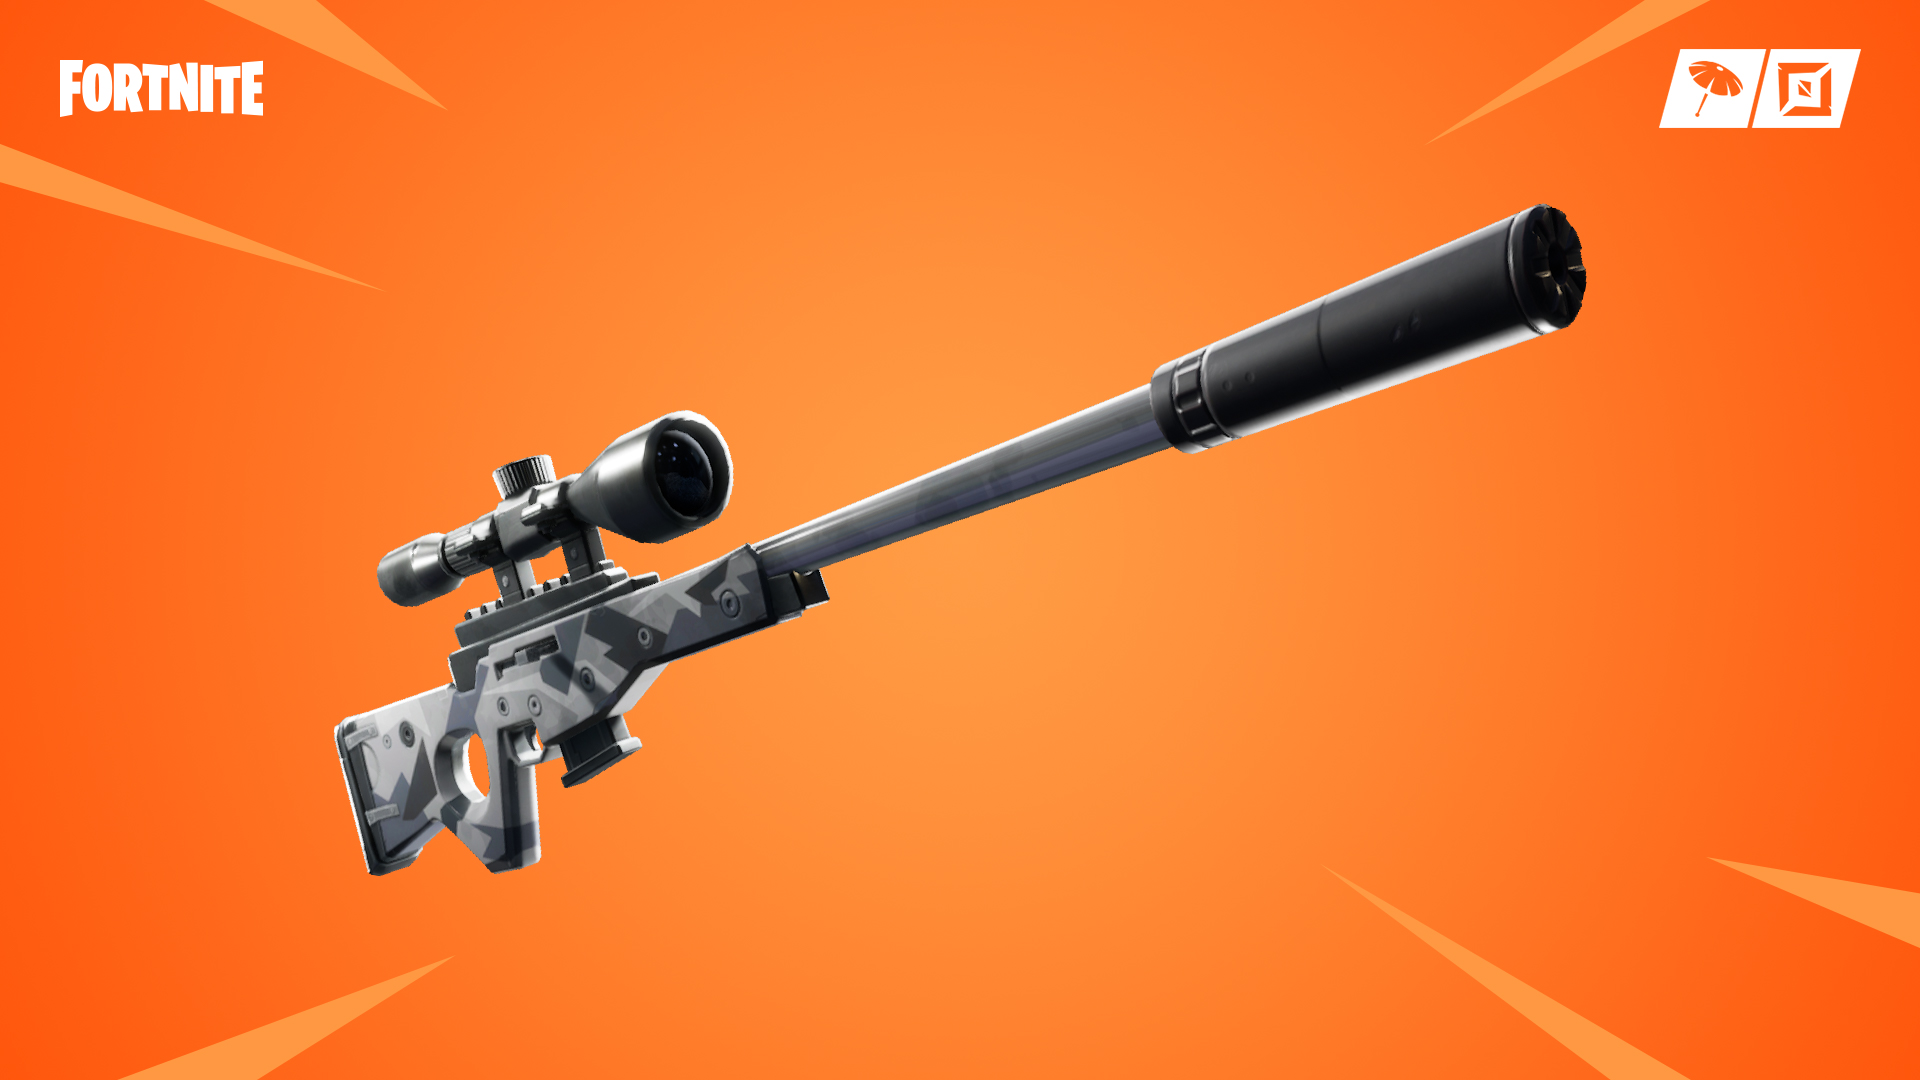 Fortnite's last content update before the next patch brings new silenced sniper rifle Cover